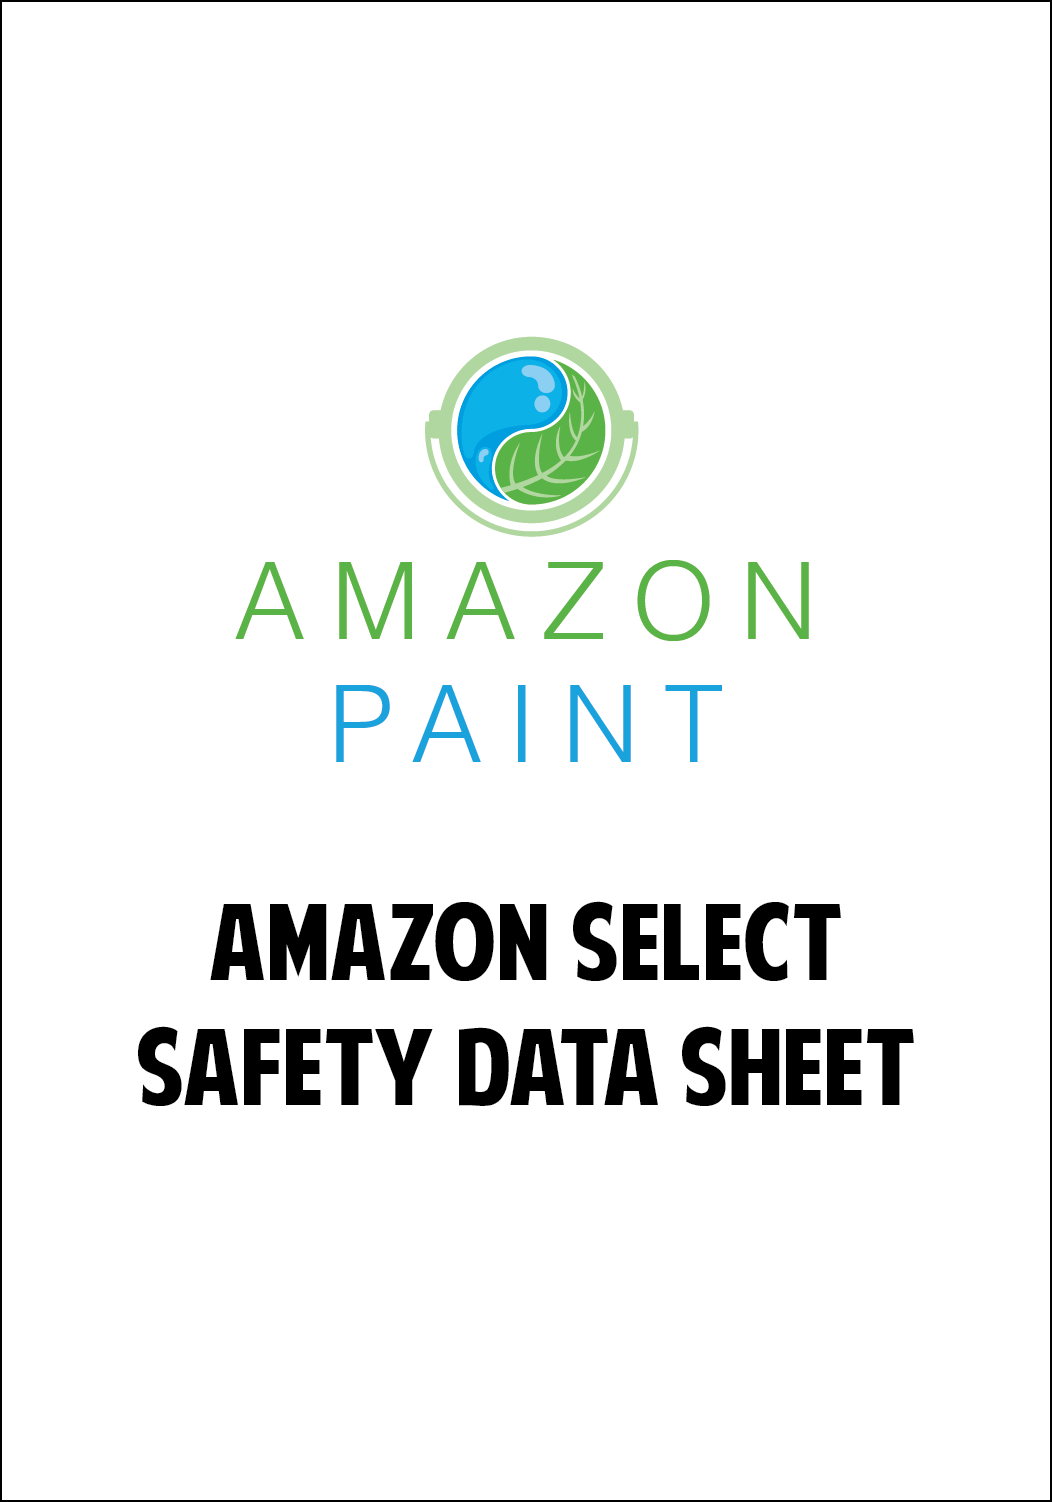 Amazon Select Safety Data Sheet